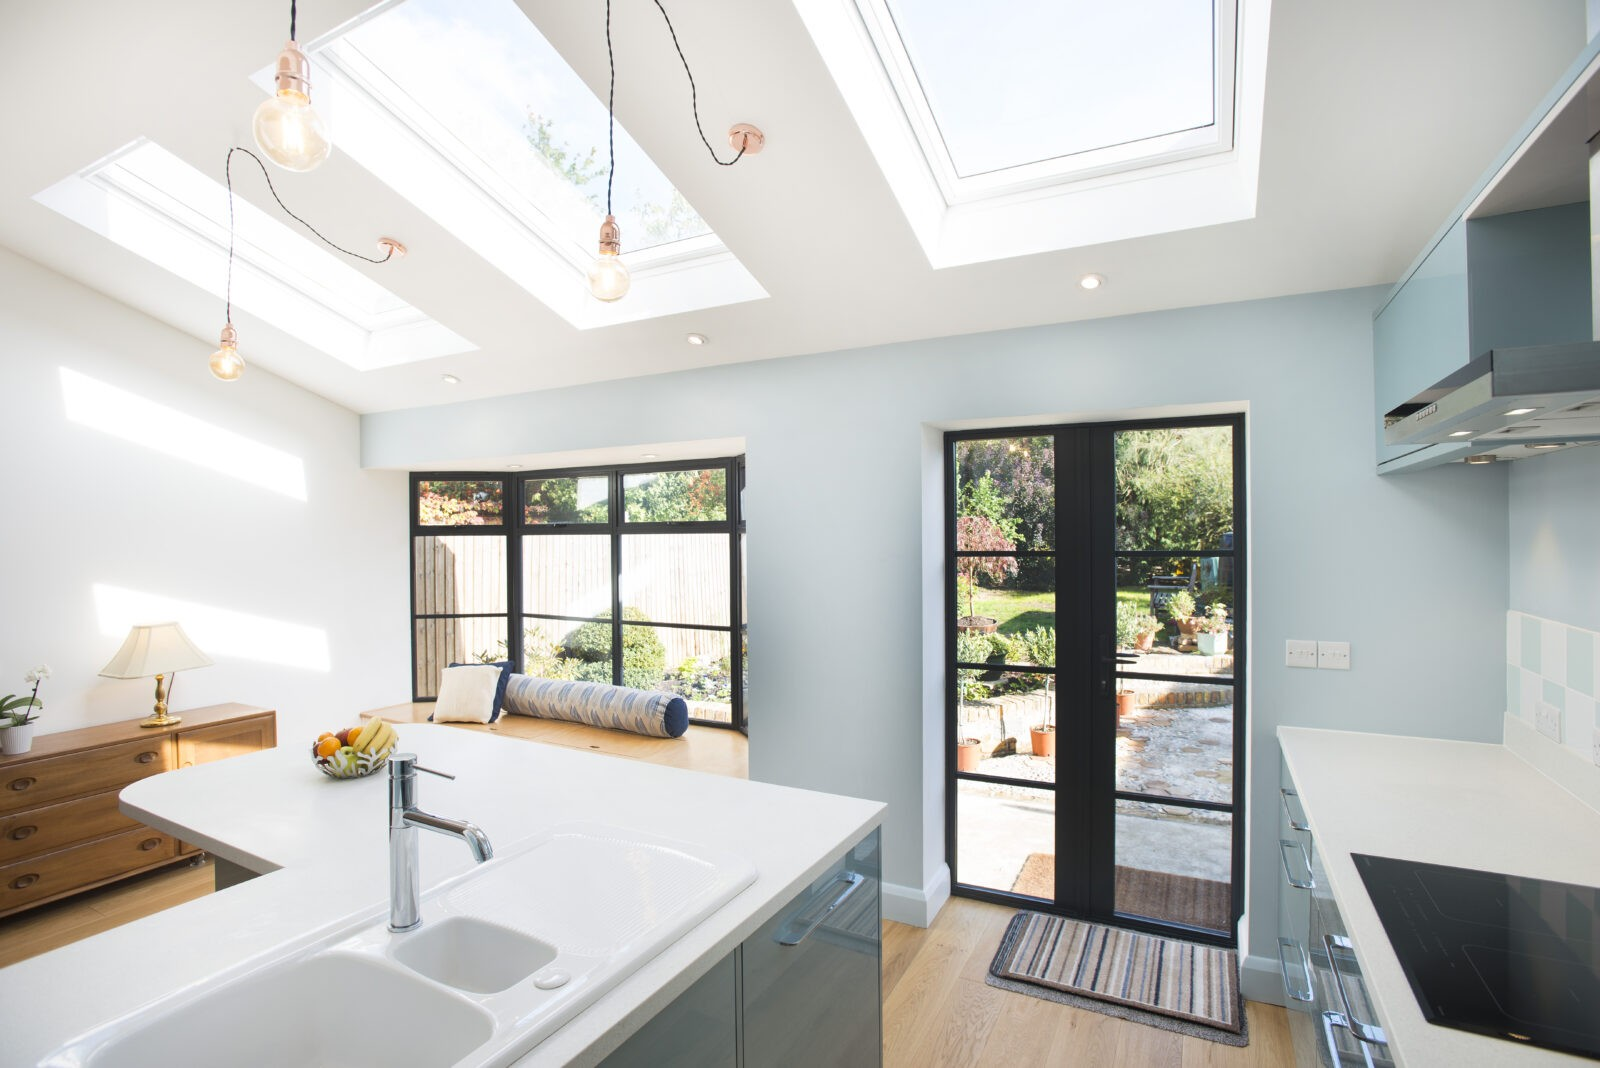 Flat Roof Vs Pitched Roof For Your Extension